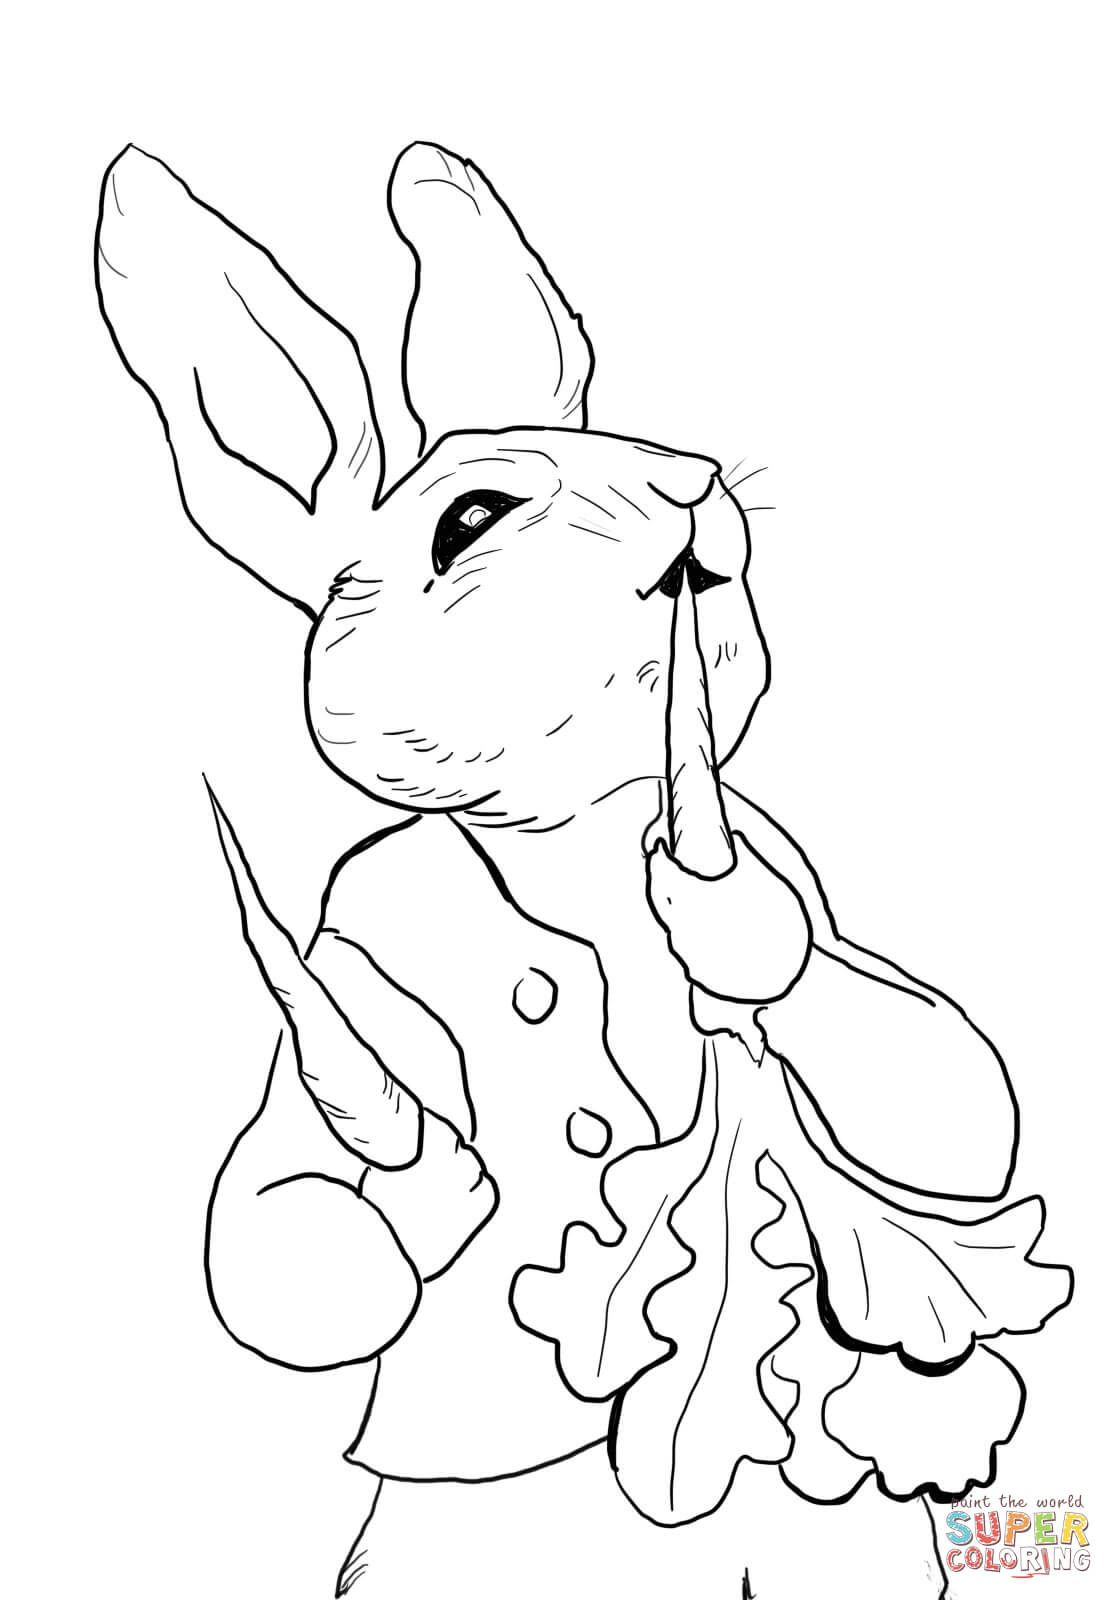 Peter Rabbit Coloring Pages Printable Bunny Application